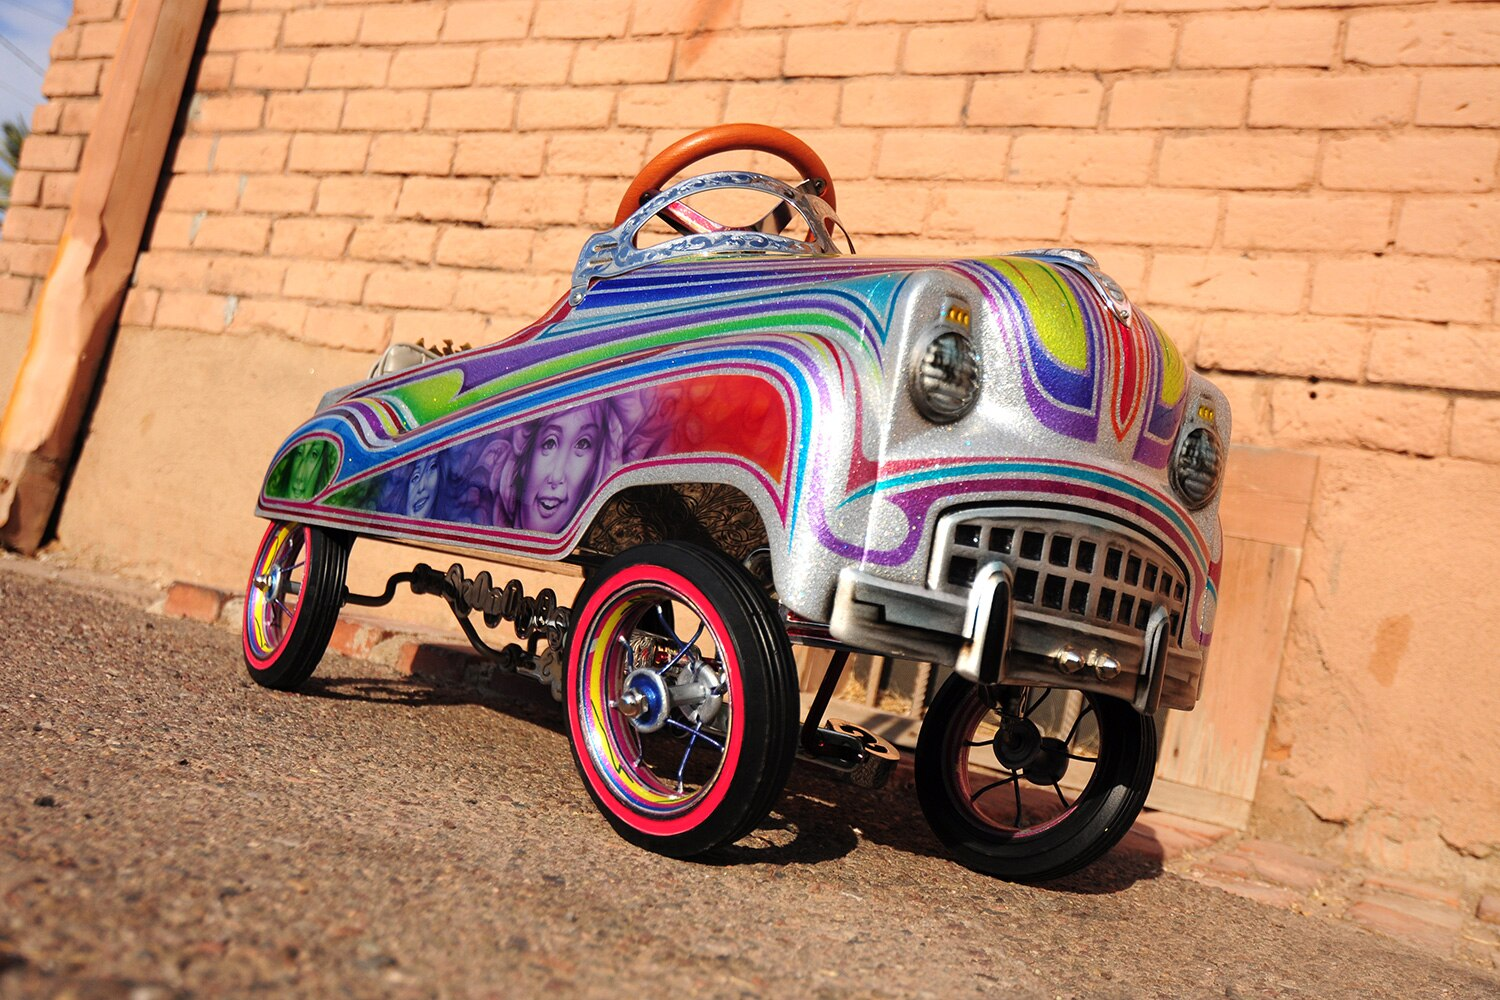 skittles-pedal-car-front-right-side-view-promo